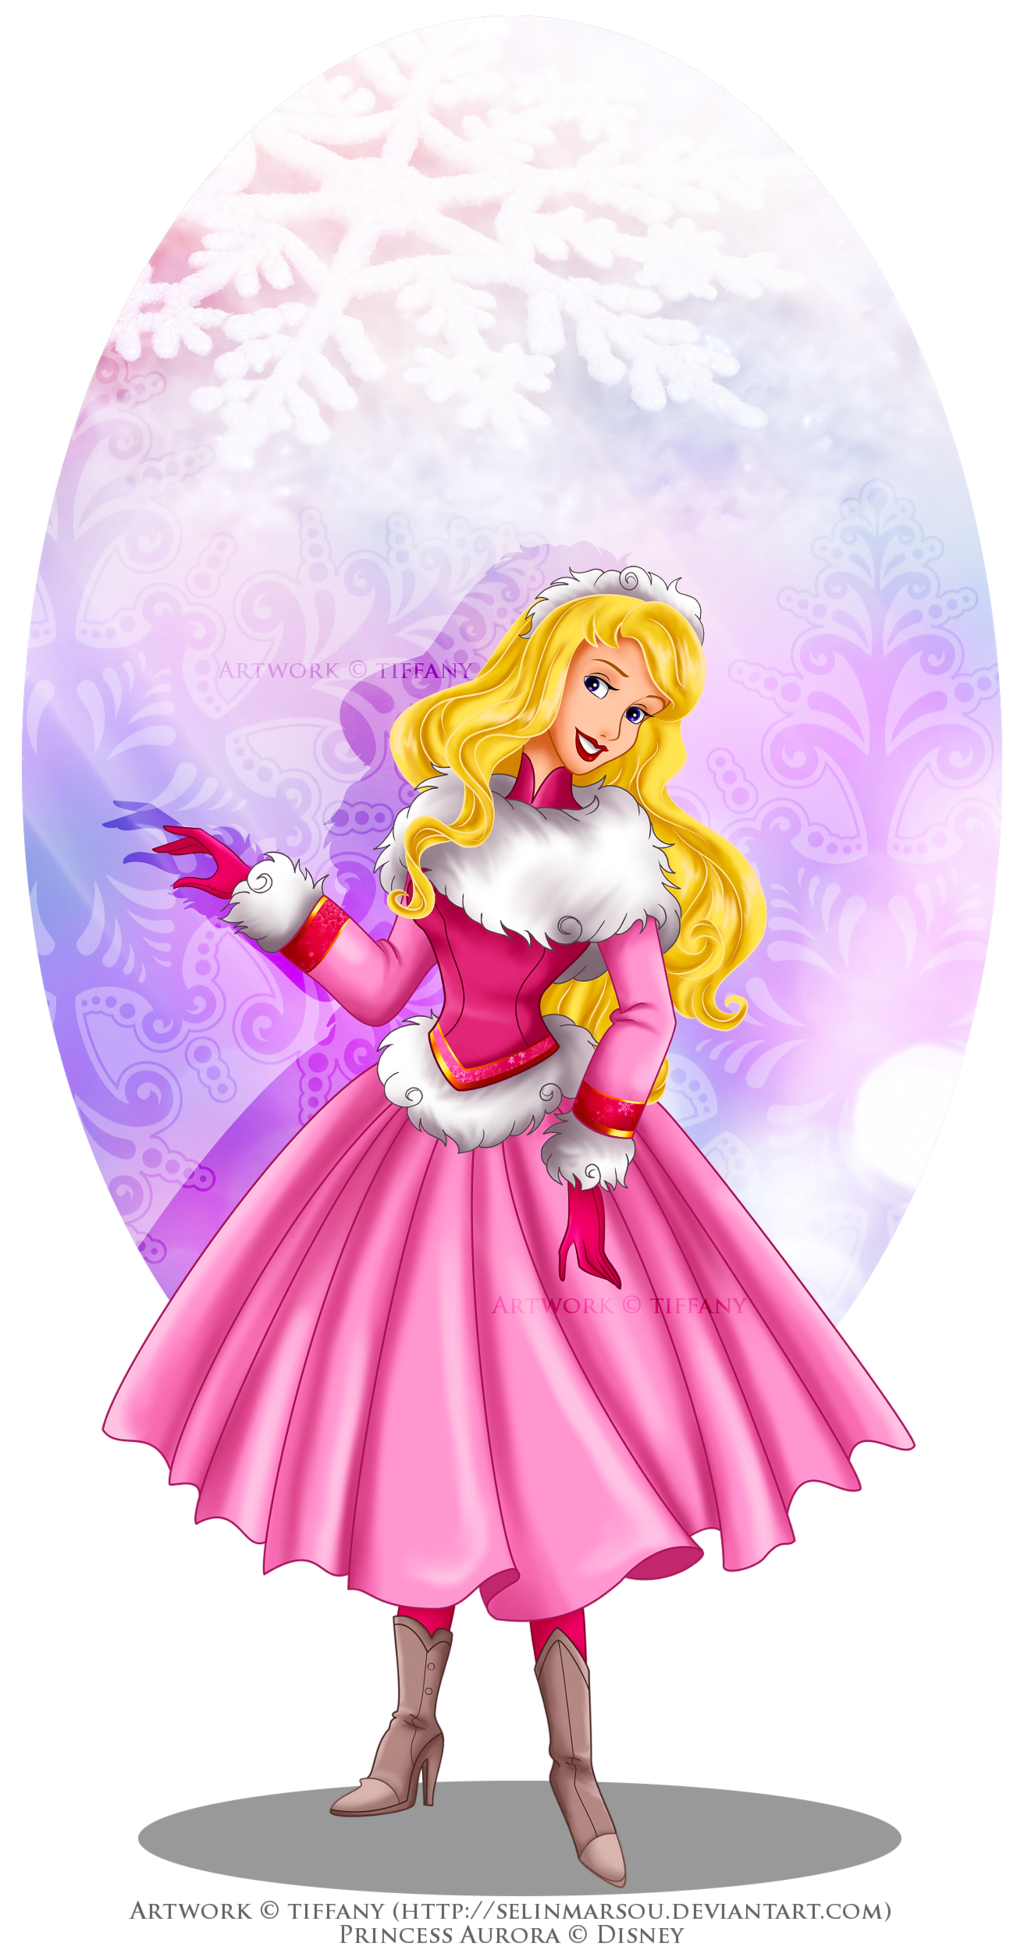 Winter Princess - Aurora by selinmarsou.deviantart.com on ...